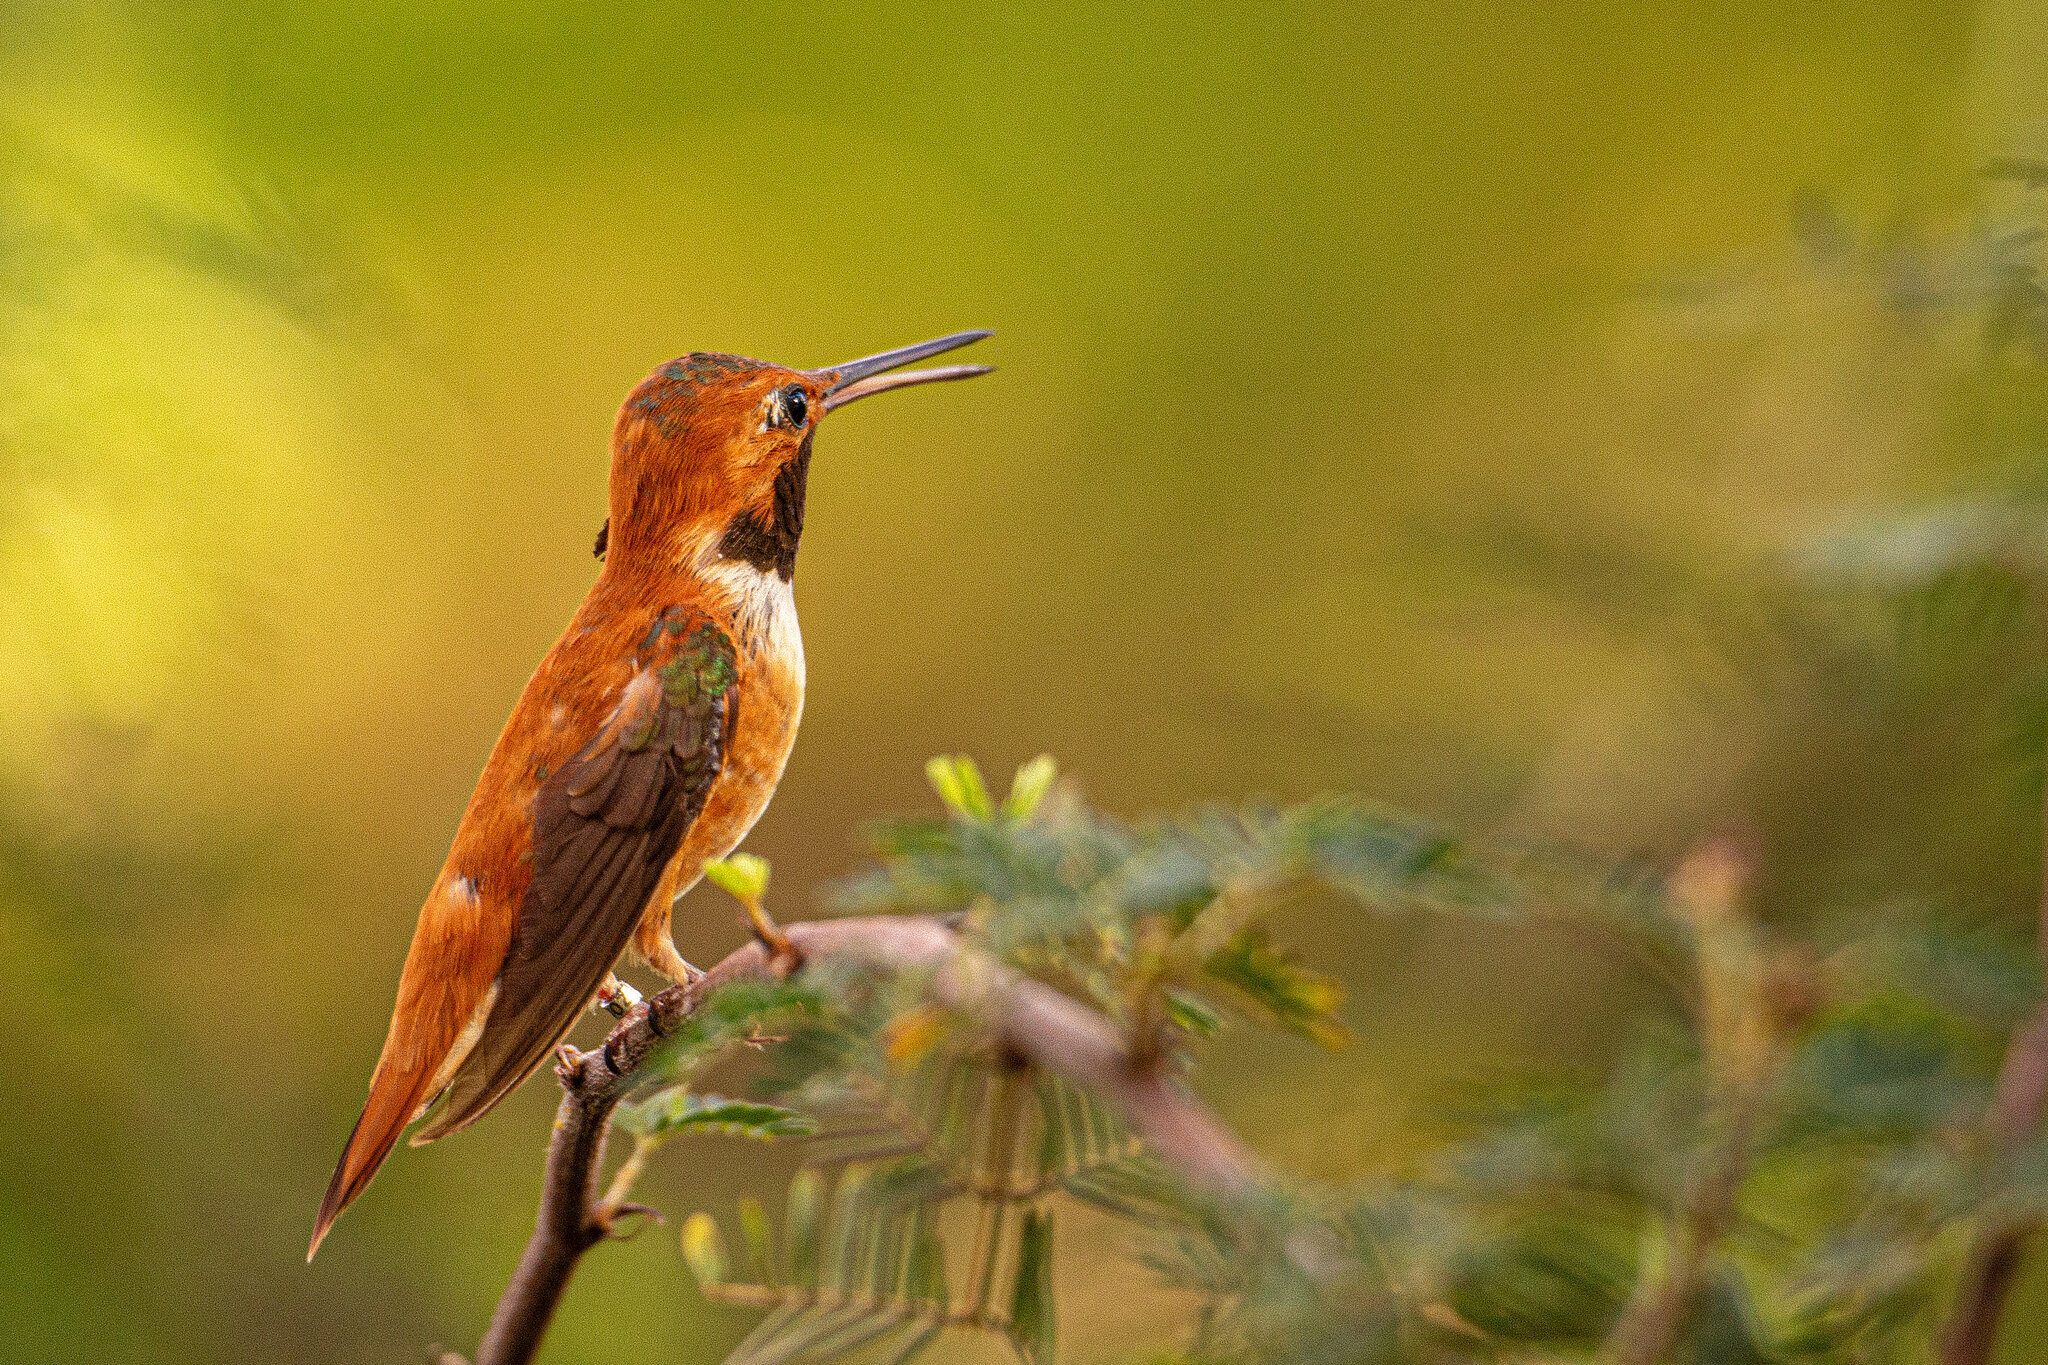 Rufous hummingbird, perched